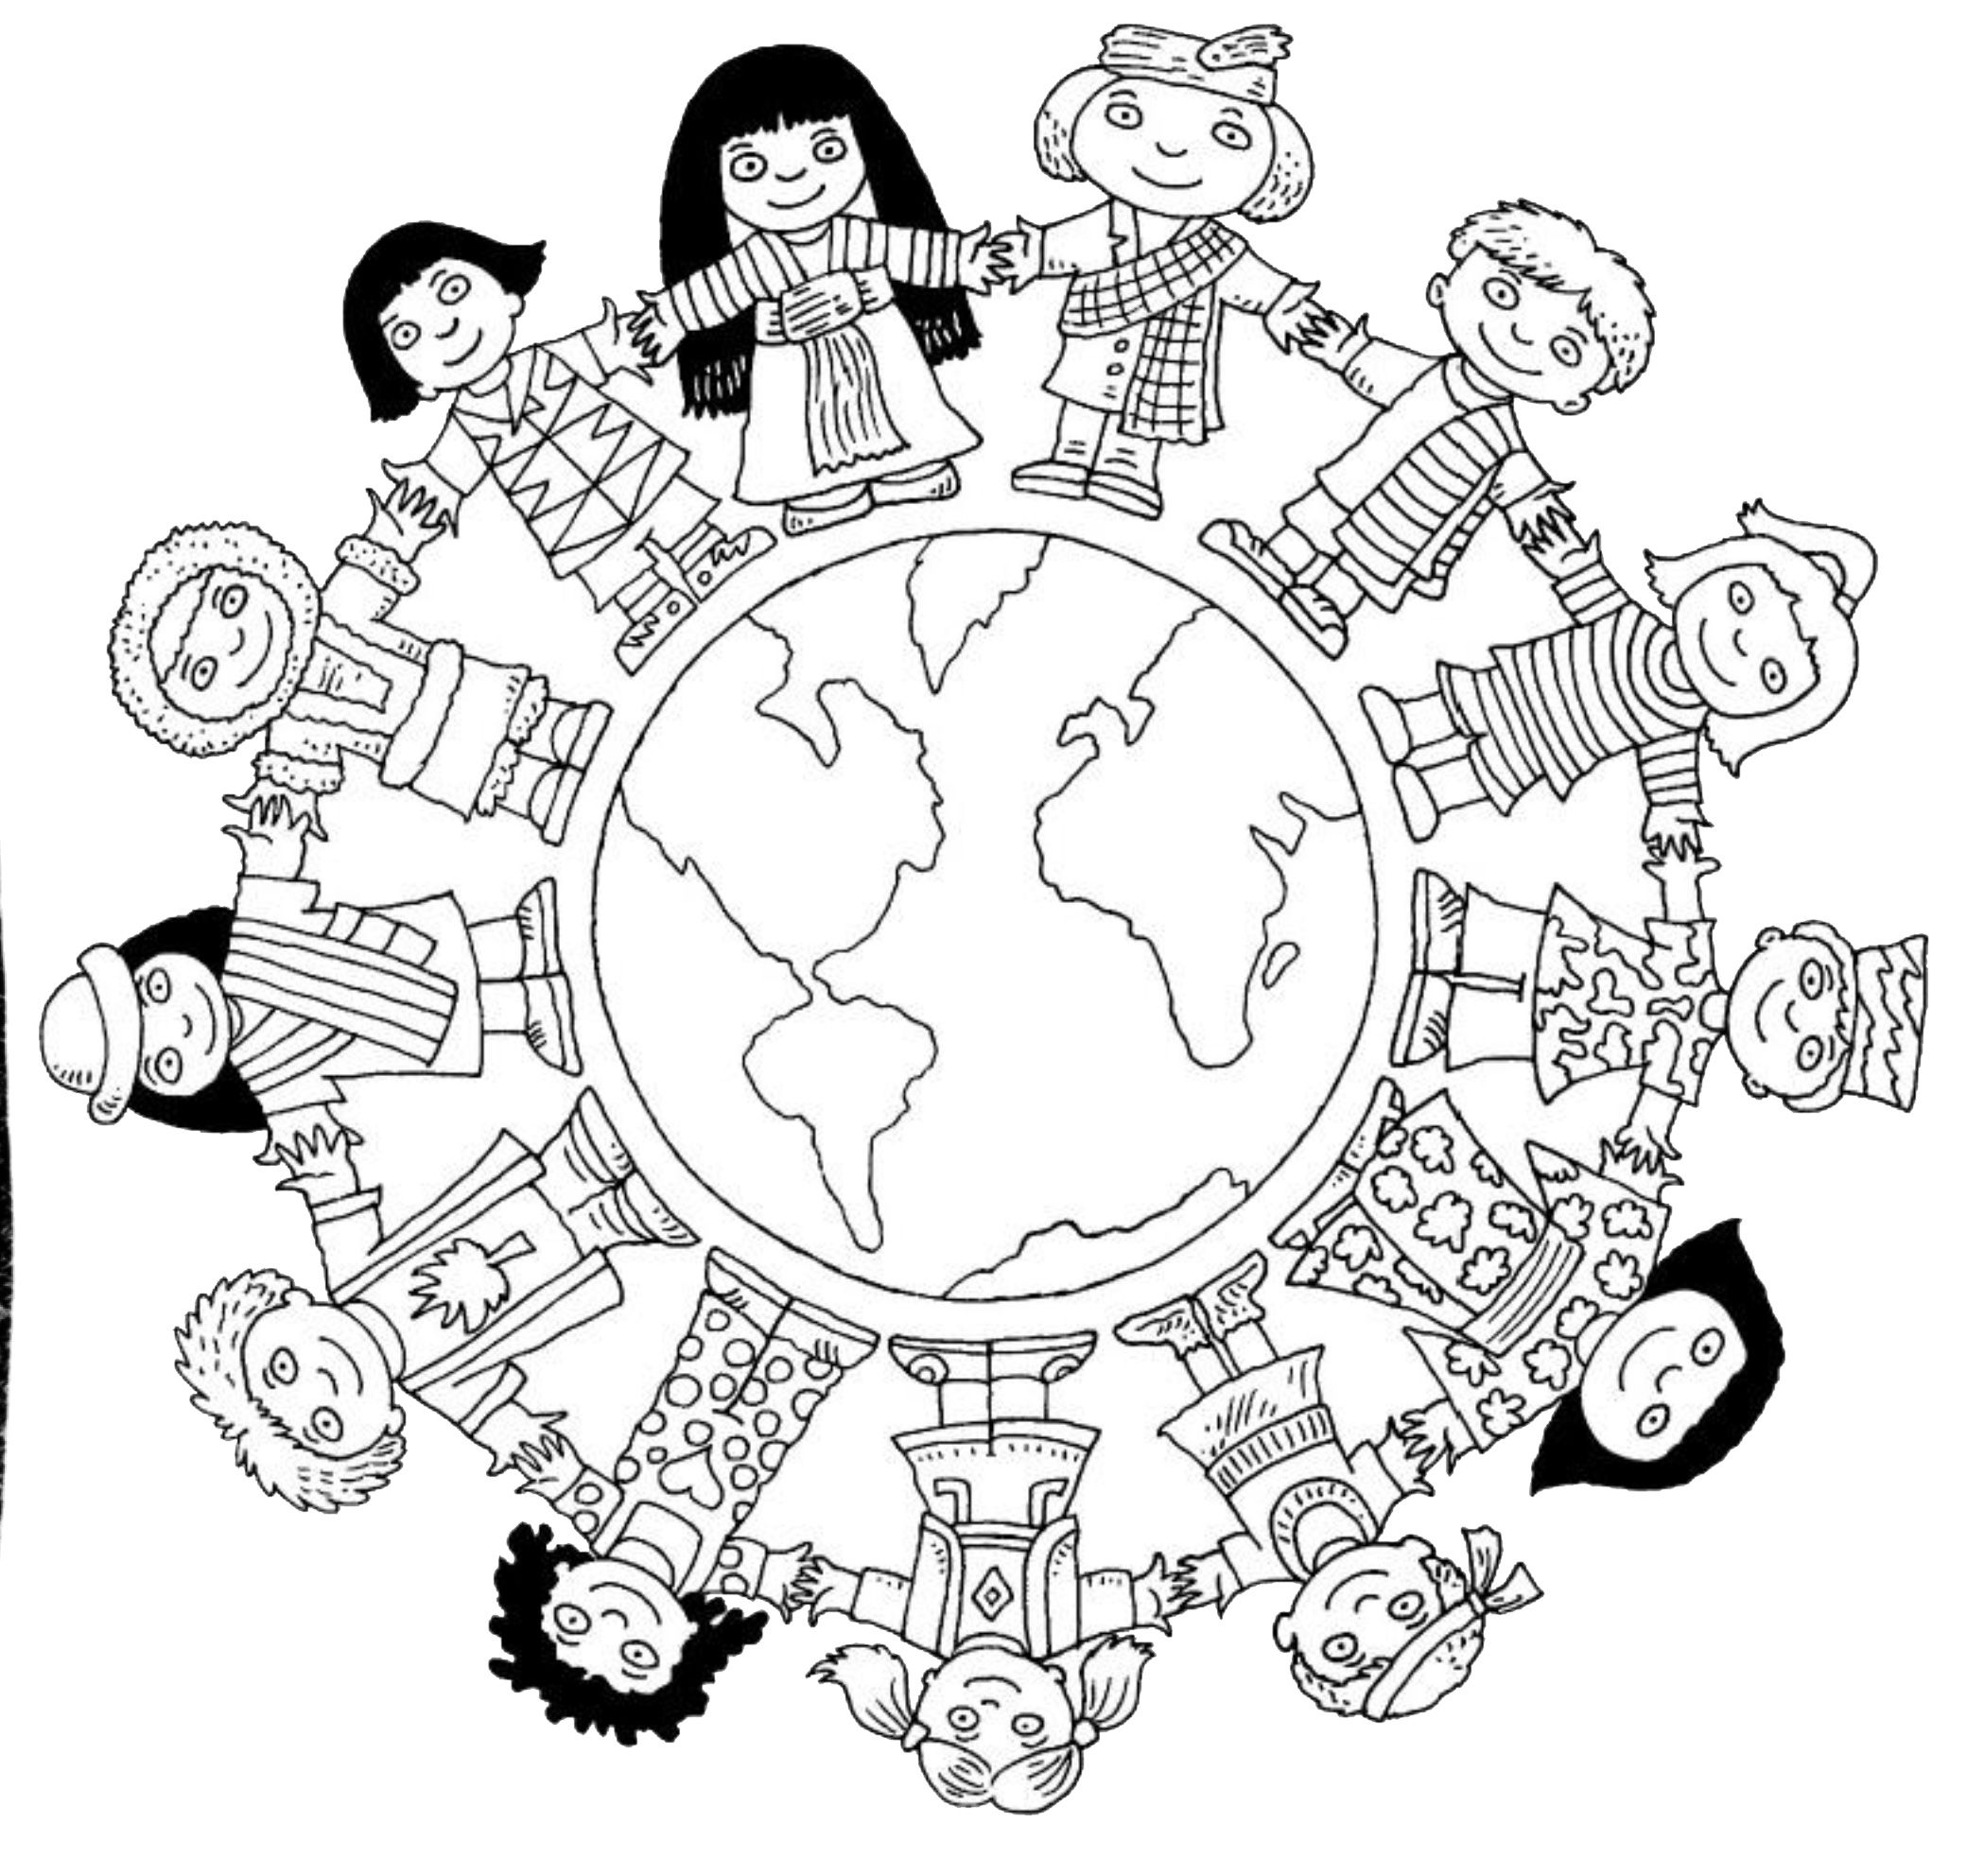 world coloring page # 1